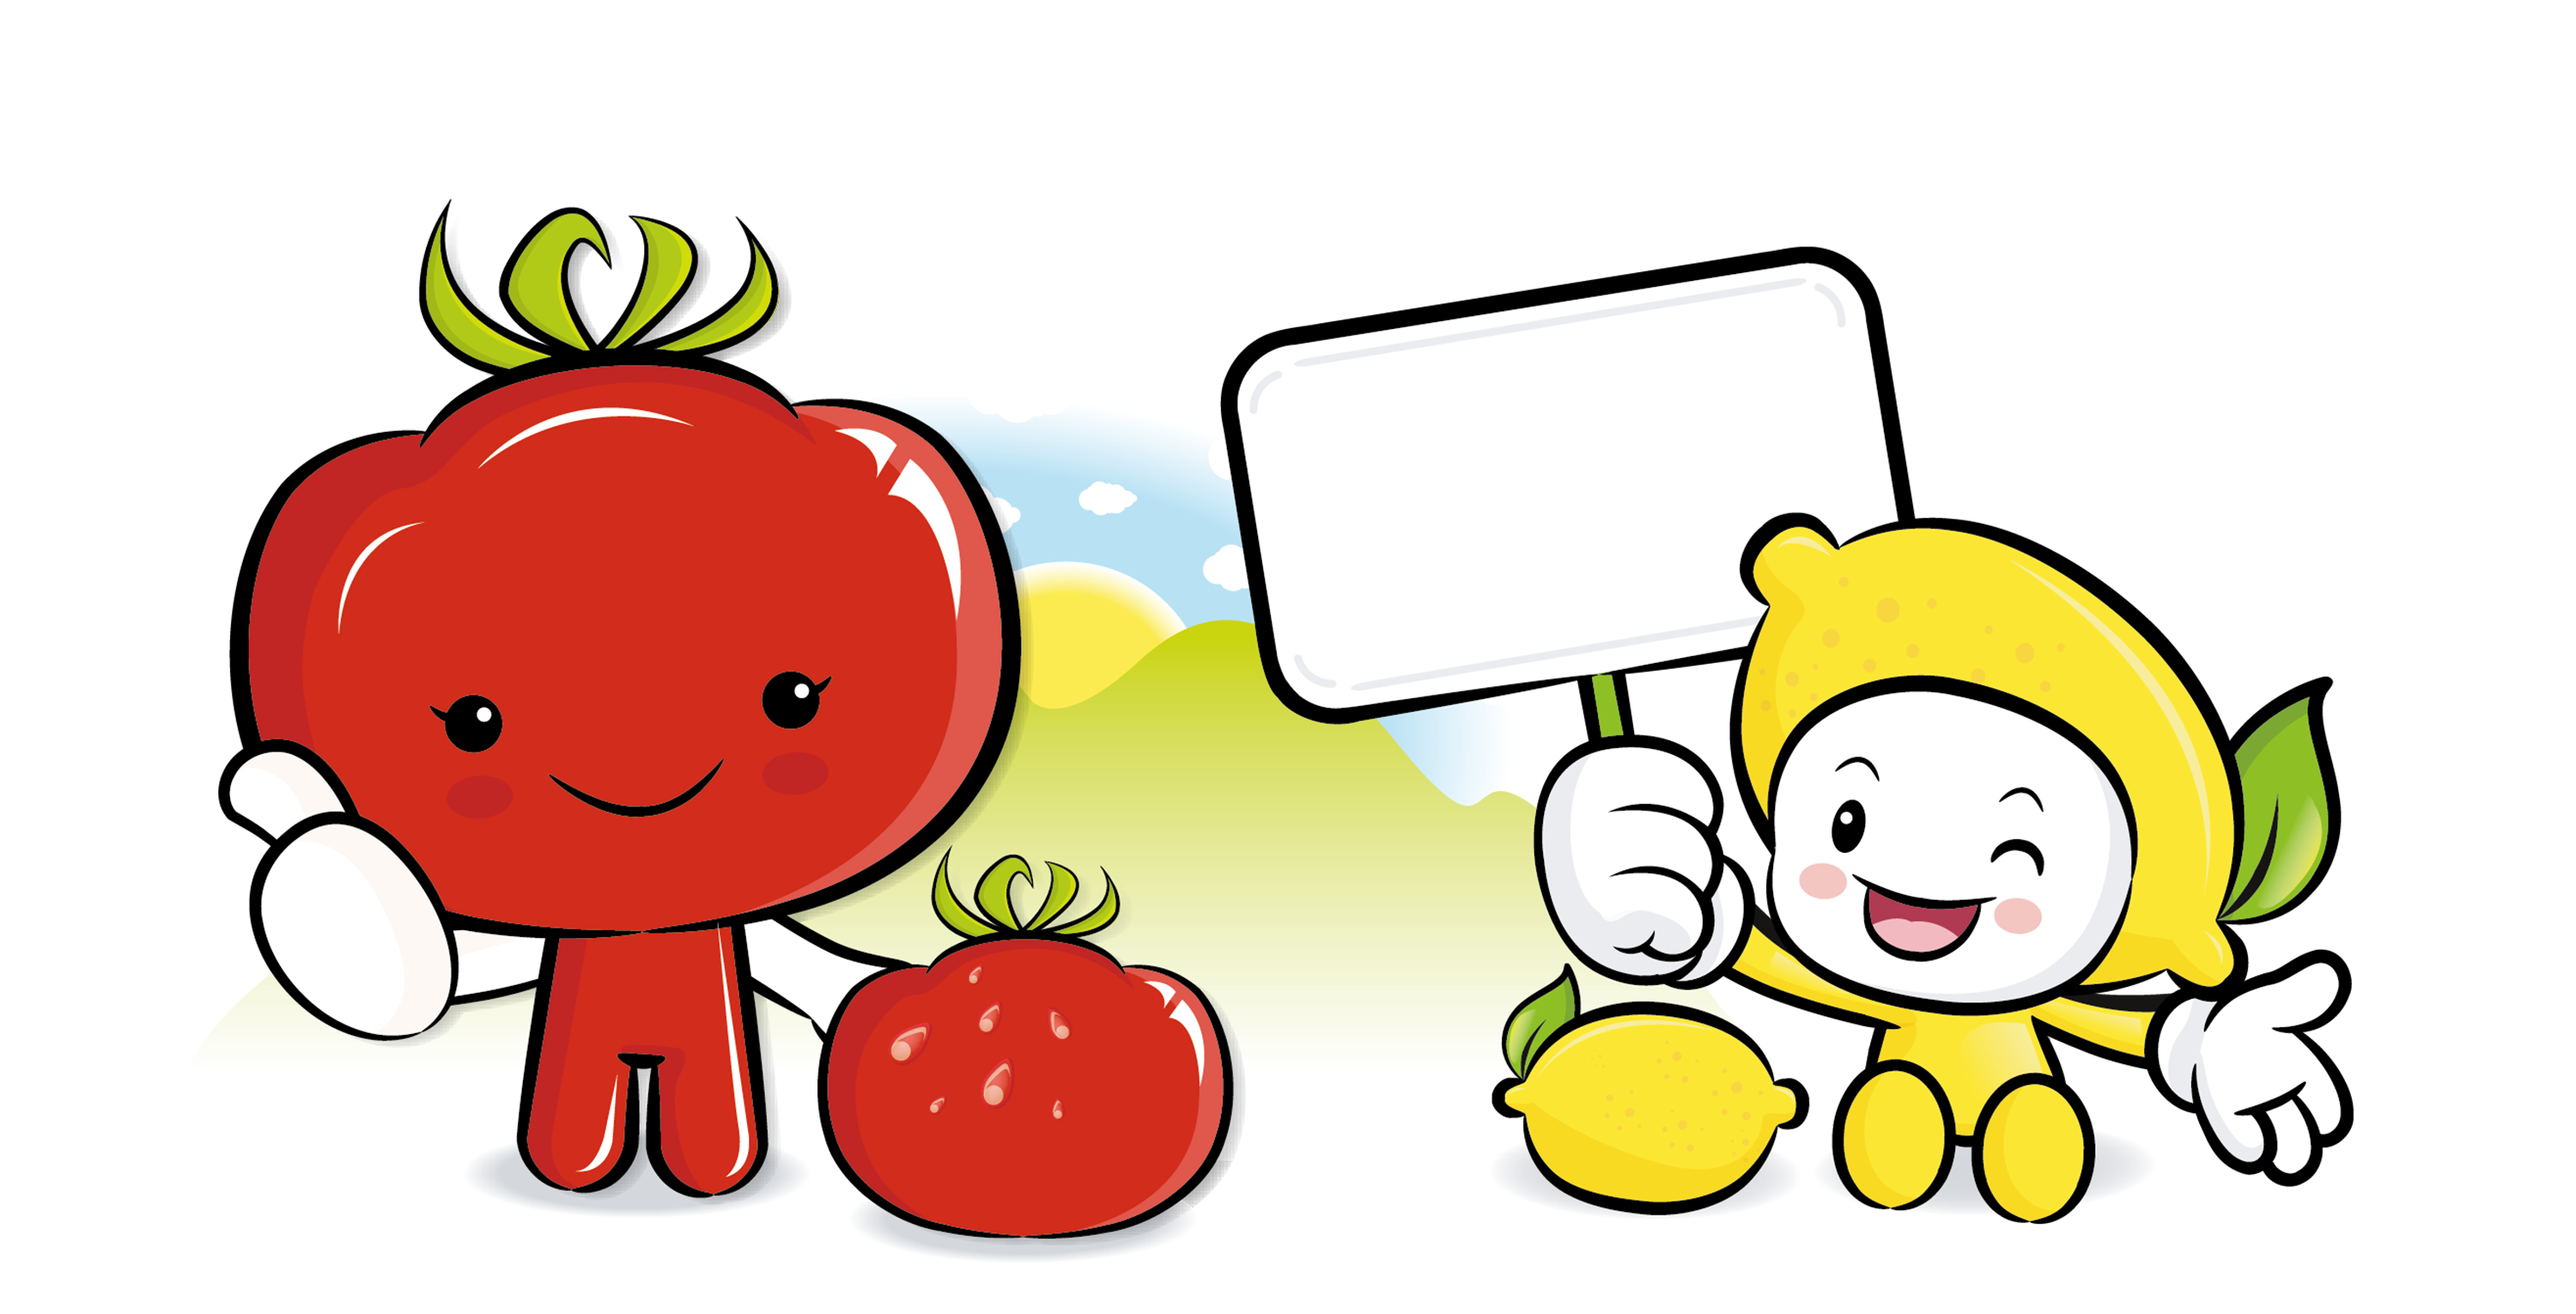 Tomatoes clipart happy tomato. Cartoon illustration lemon material